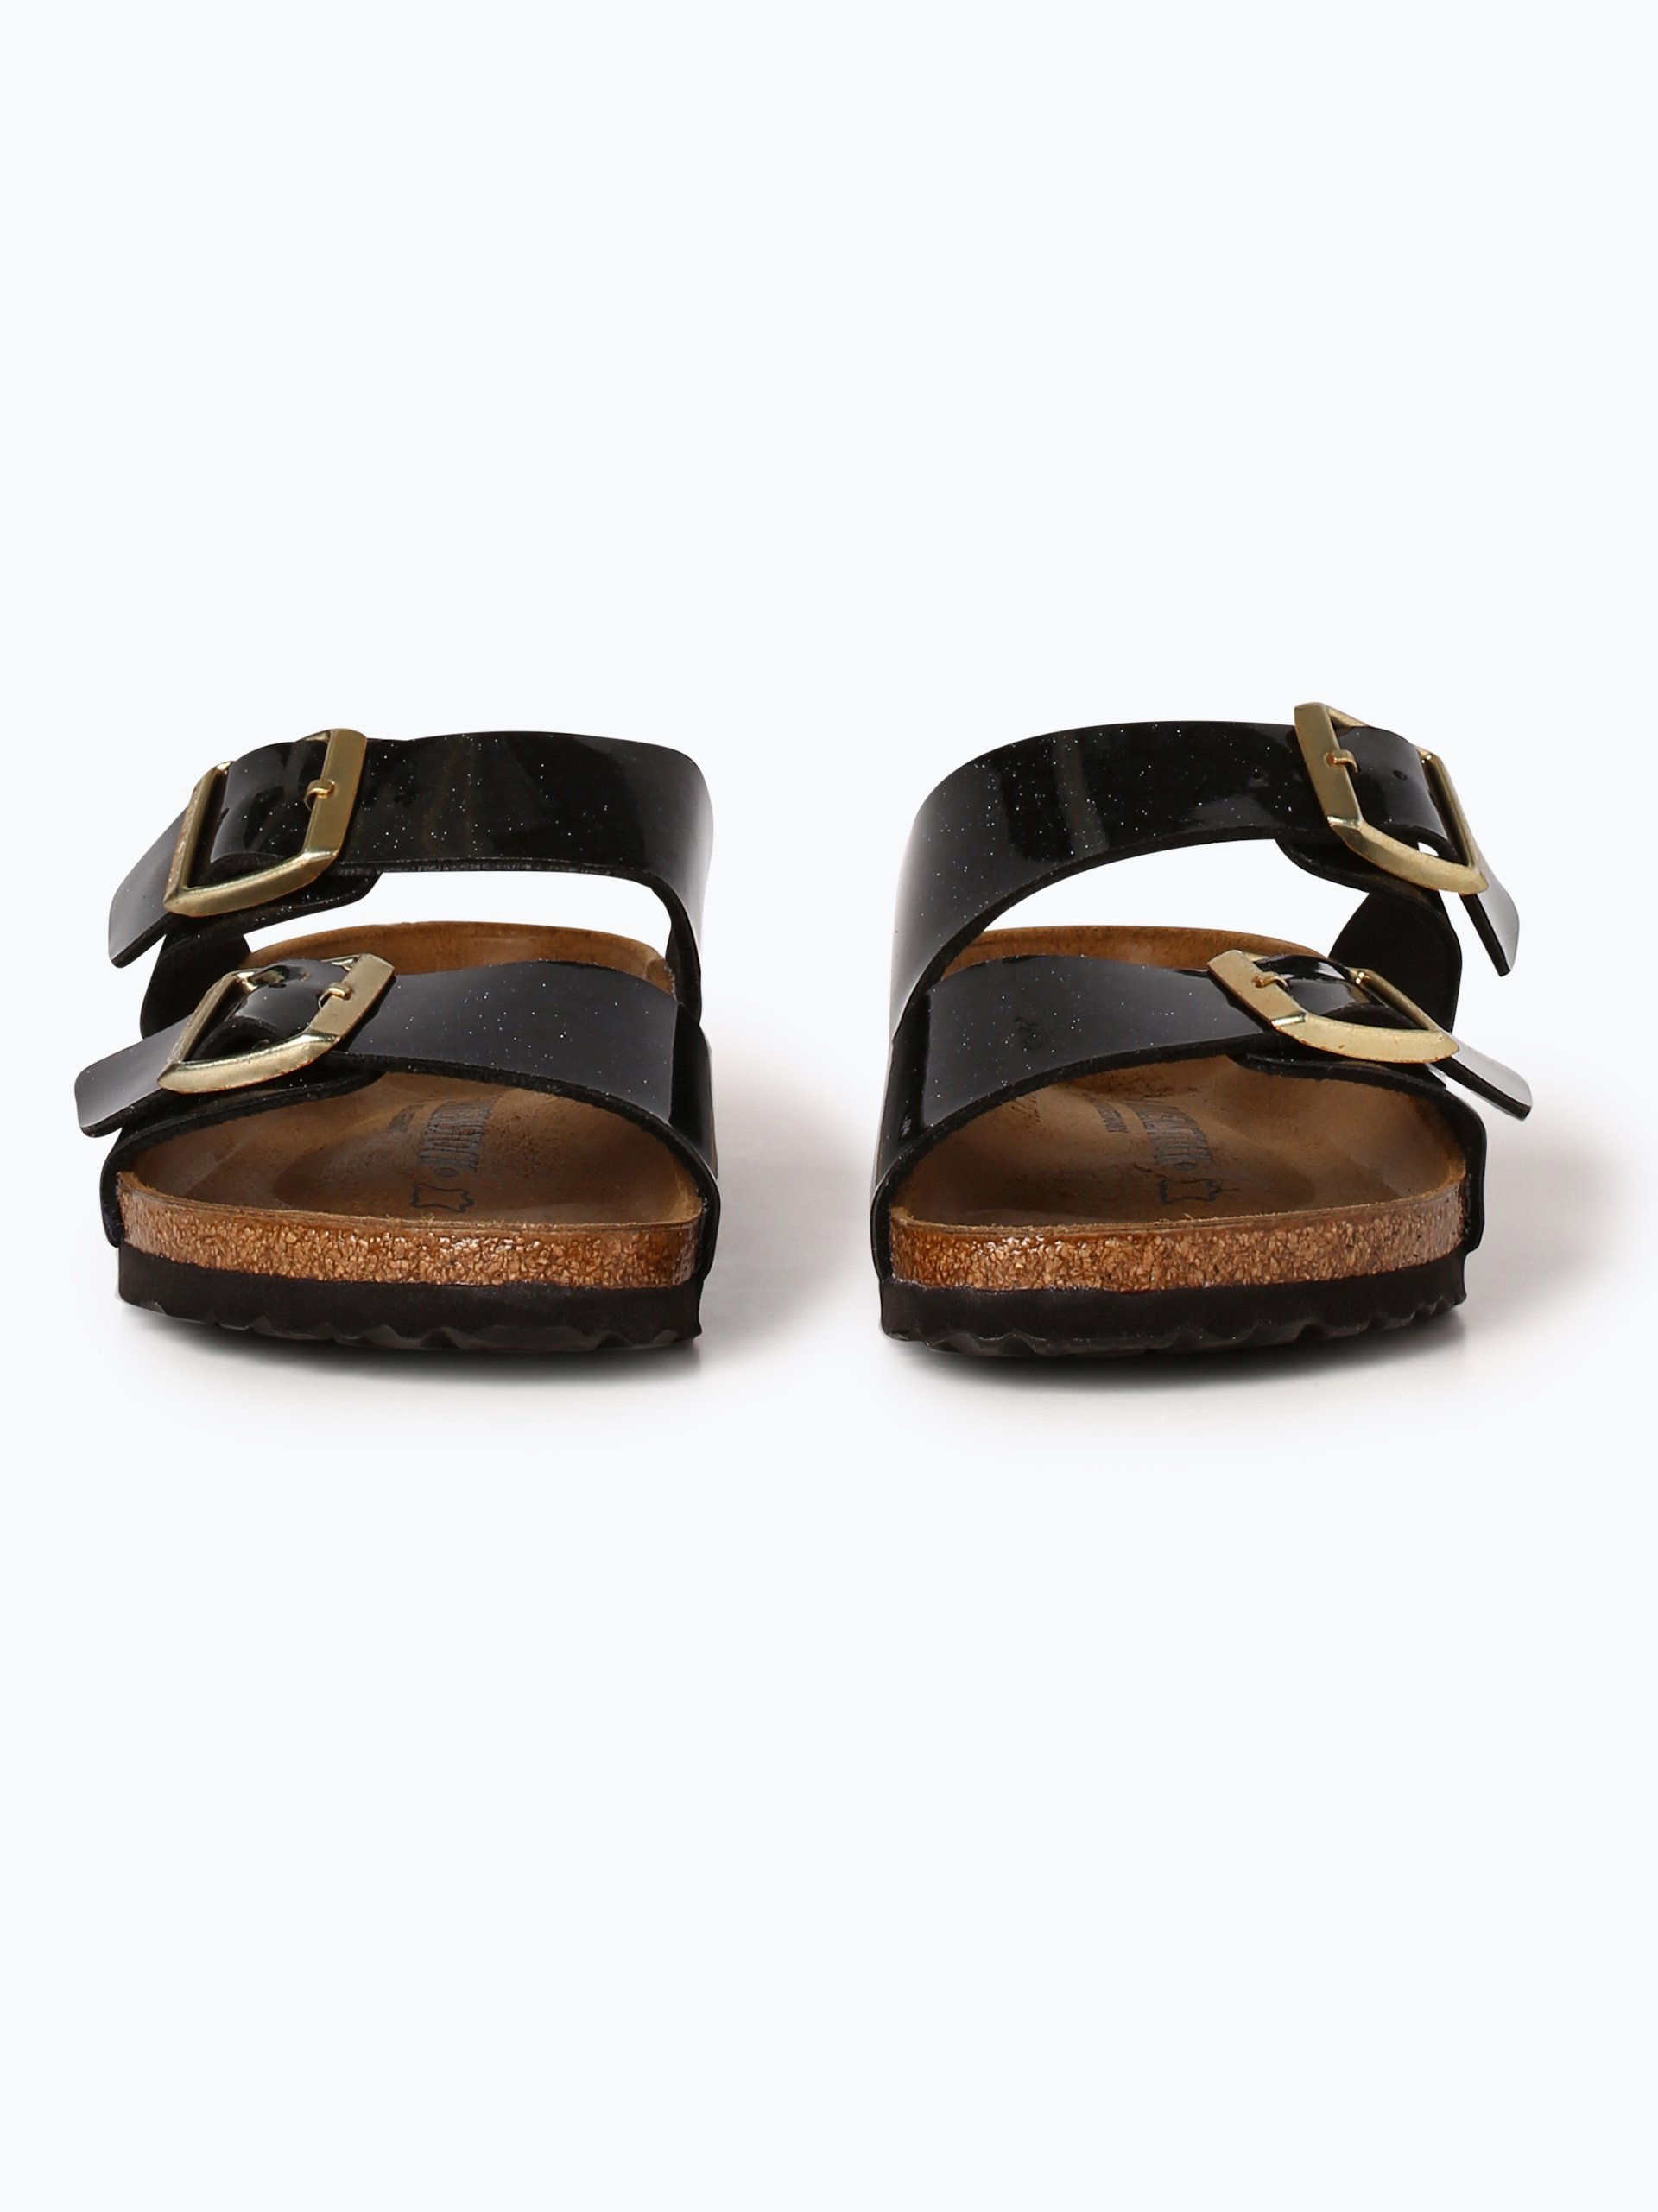 birkenstock damen sandalen mit leder anteil arizona bs schwarz gemustert online kaufen. Black Bedroom Furniture Sets. Home Design Ideas